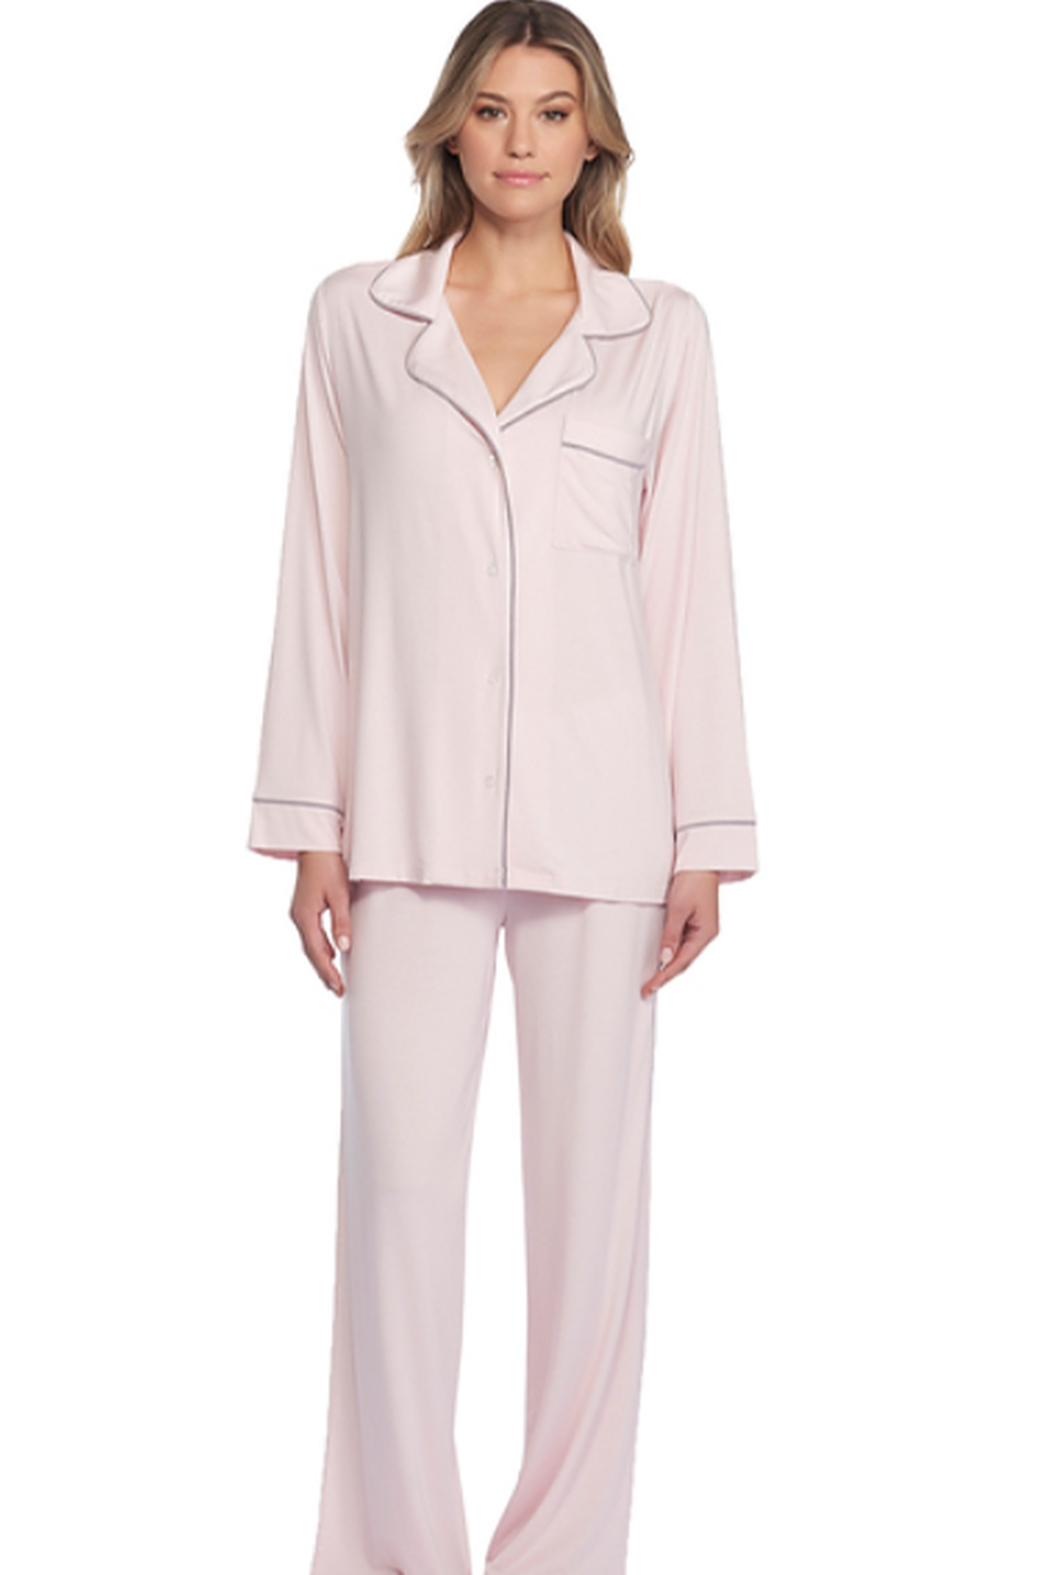 The Birds Nest LUXE MILK JERSEY PIPED PAJAMA SET - PINK (MEDIUM) - Front Full Image